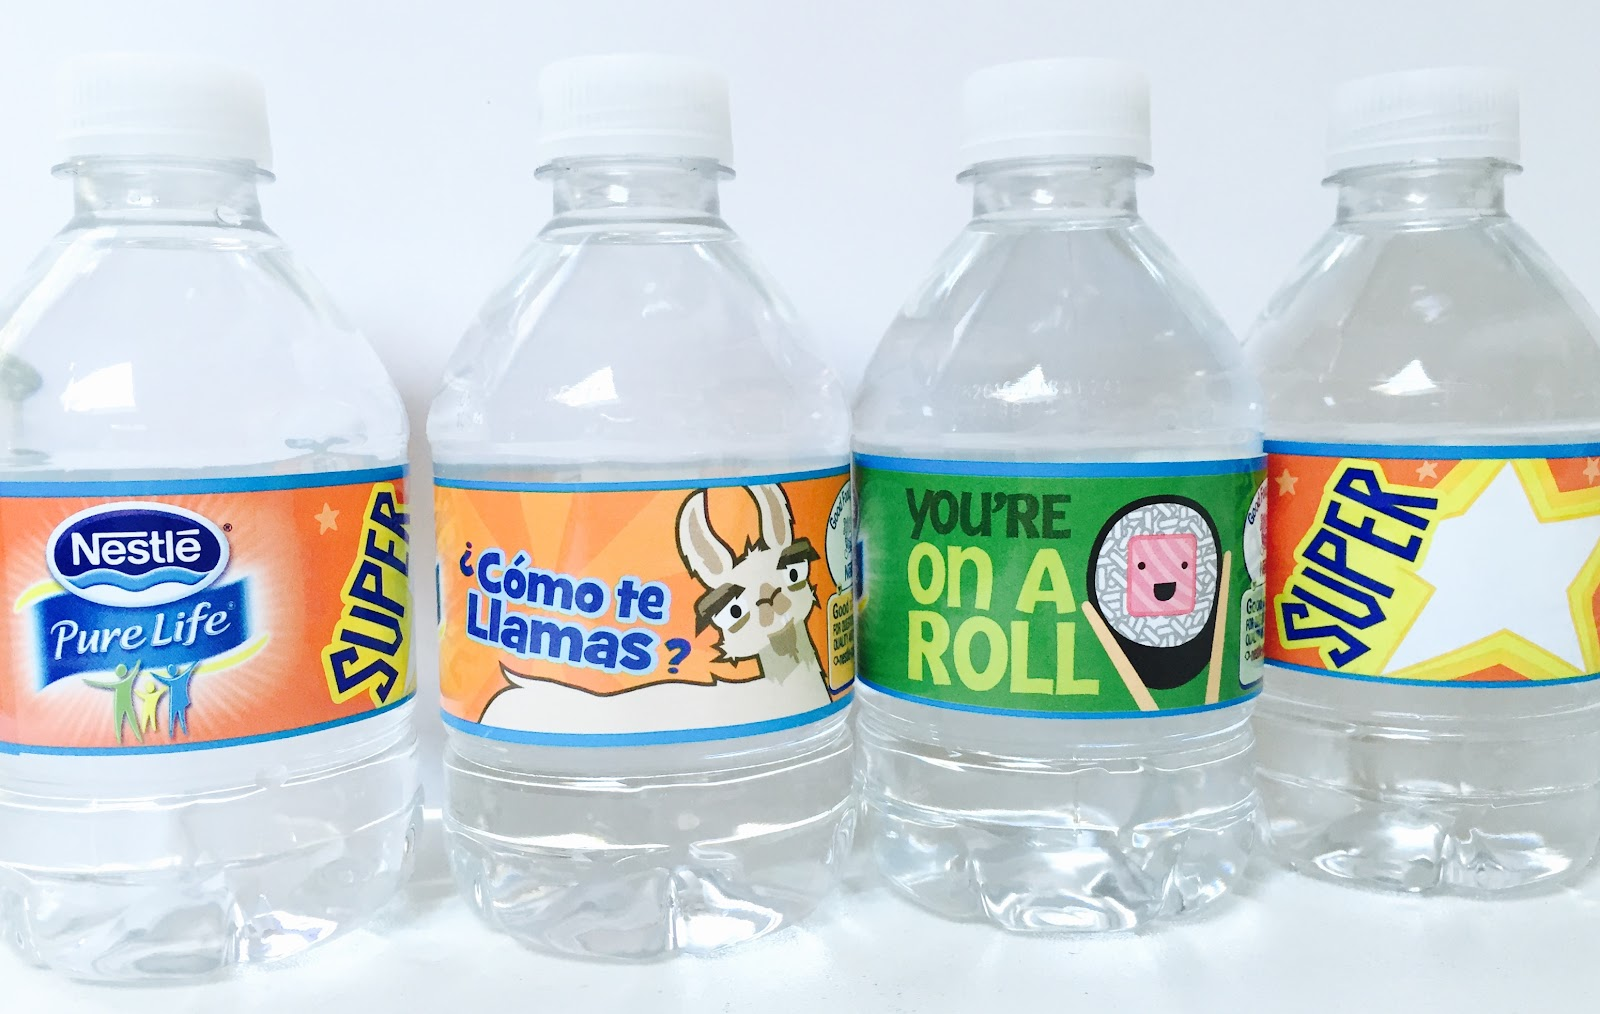 nestle pure life water bottles.jpg